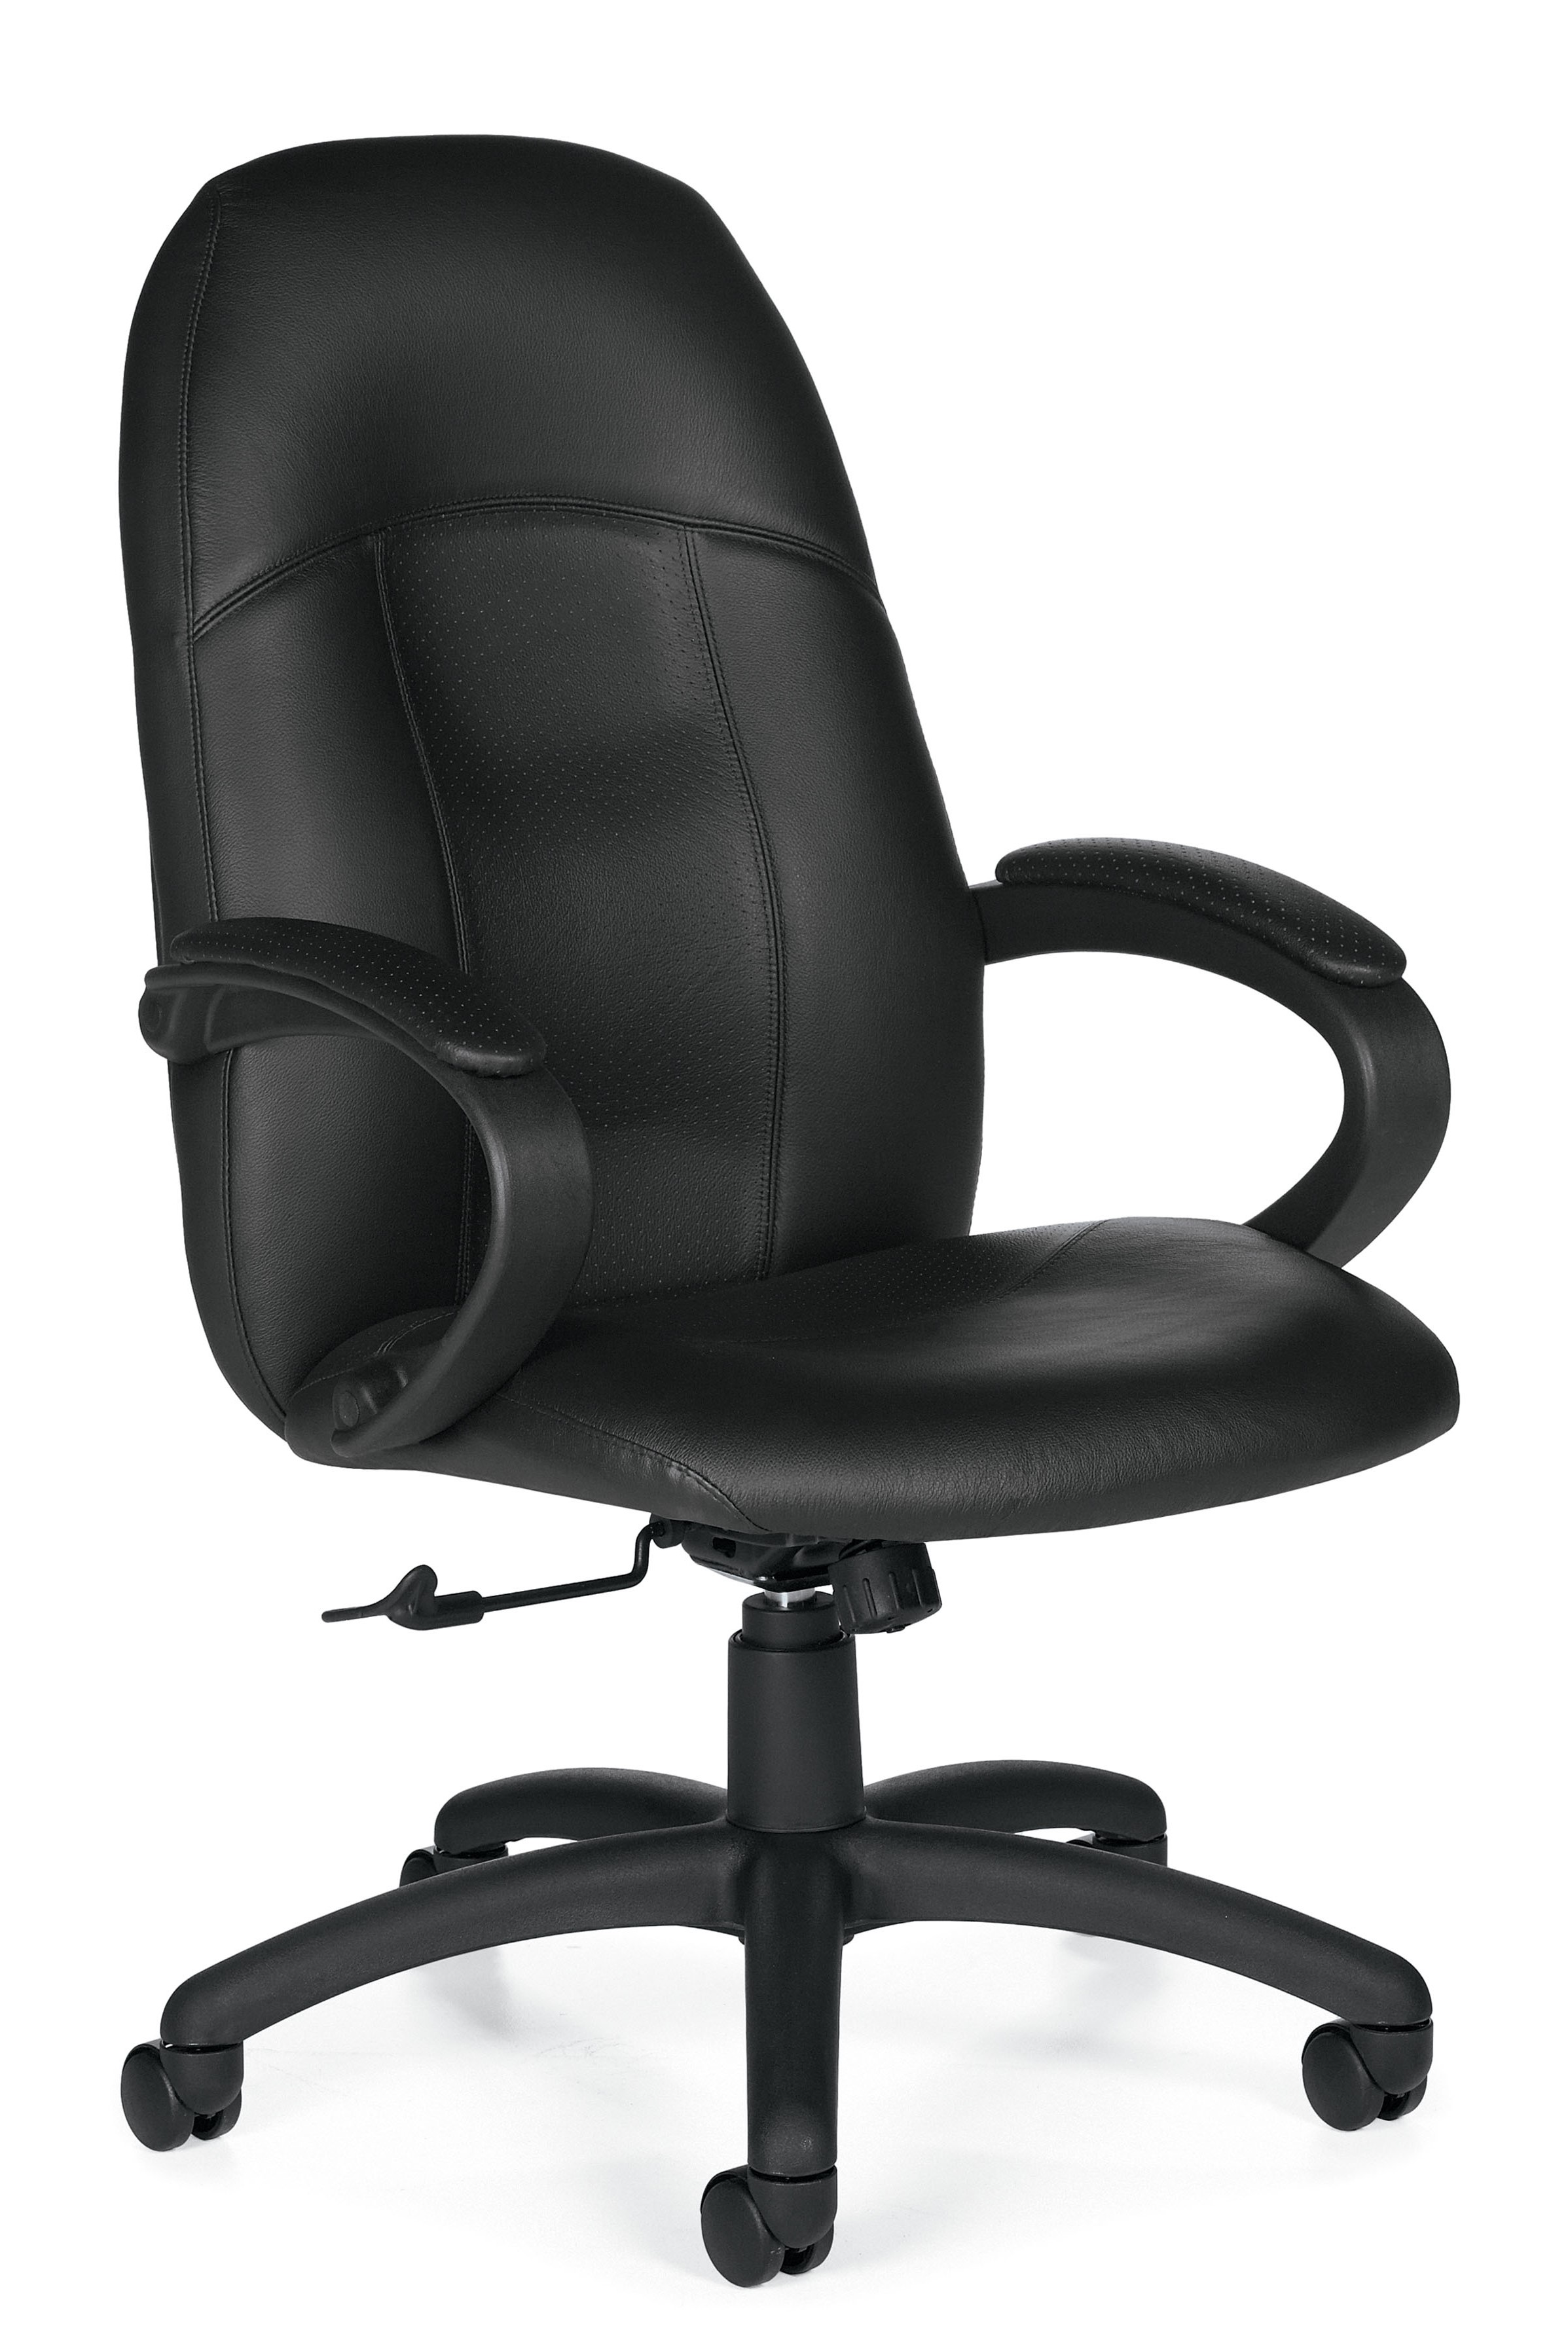 Conference Chair 6